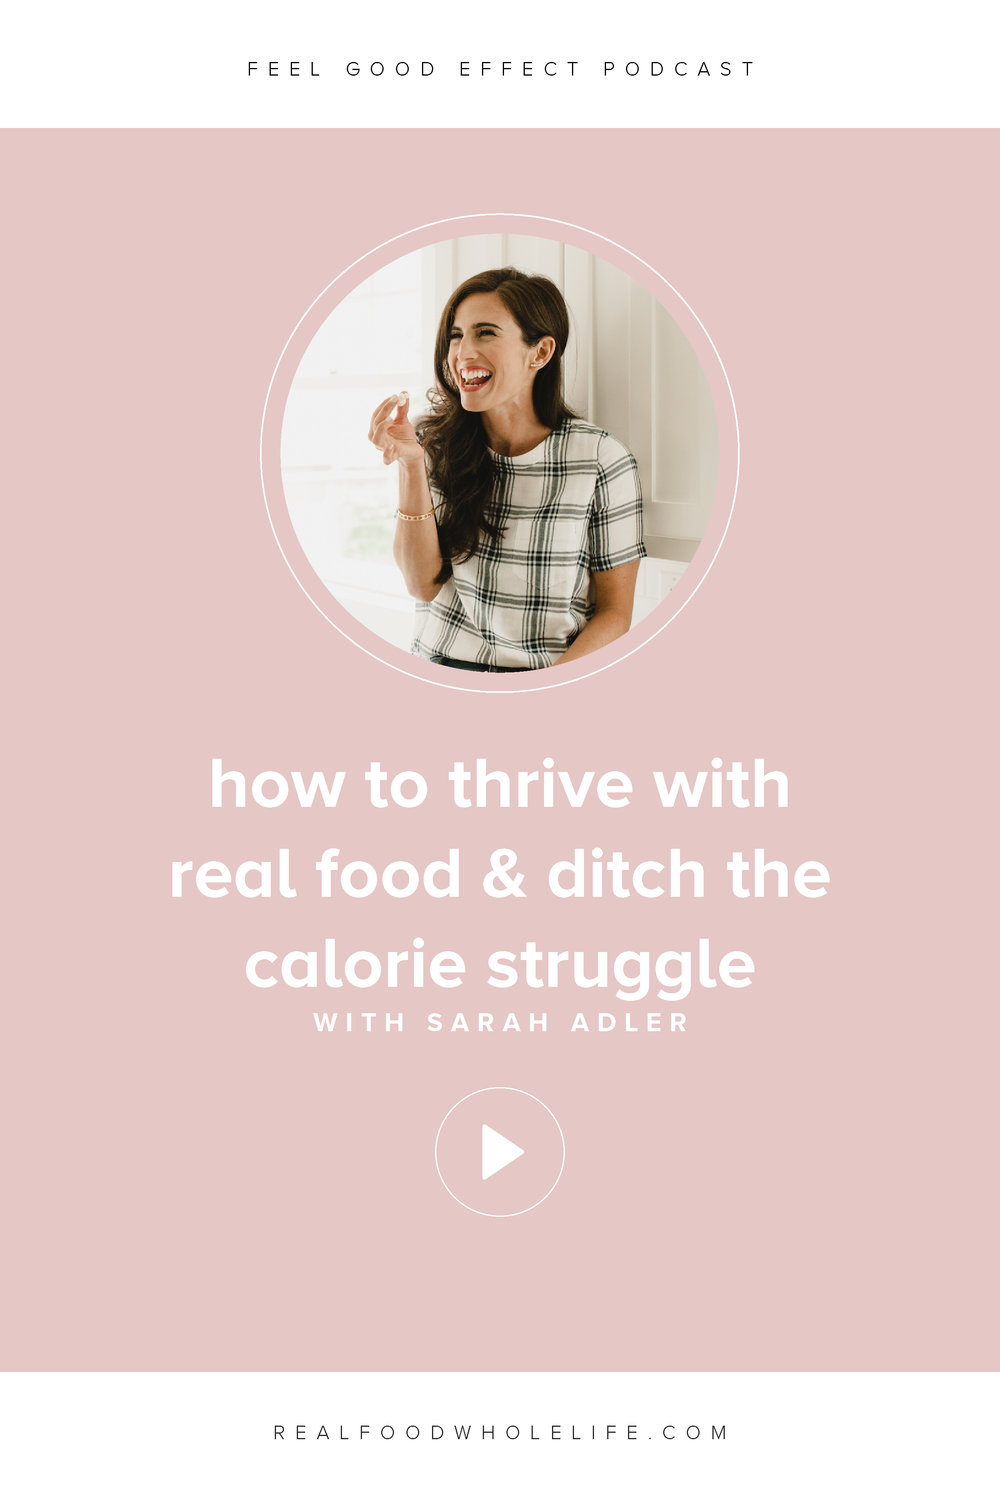 An interview with Sarah Adler from Simply Real Health why real food is better than a pre-planned diet, how to ditch the calorie struggle and why it's so important to have a good relationship with food. Read the interview or listen on the Feel Good Effect Podcast.   #feelgoodeffectpodcast #podcast #wellness #healthyandwellness #wellnesspodcast #healthpodcast #healthandwellnesspodcast #selfhelp #selfimprovement #healthylifestyle #healthyliving